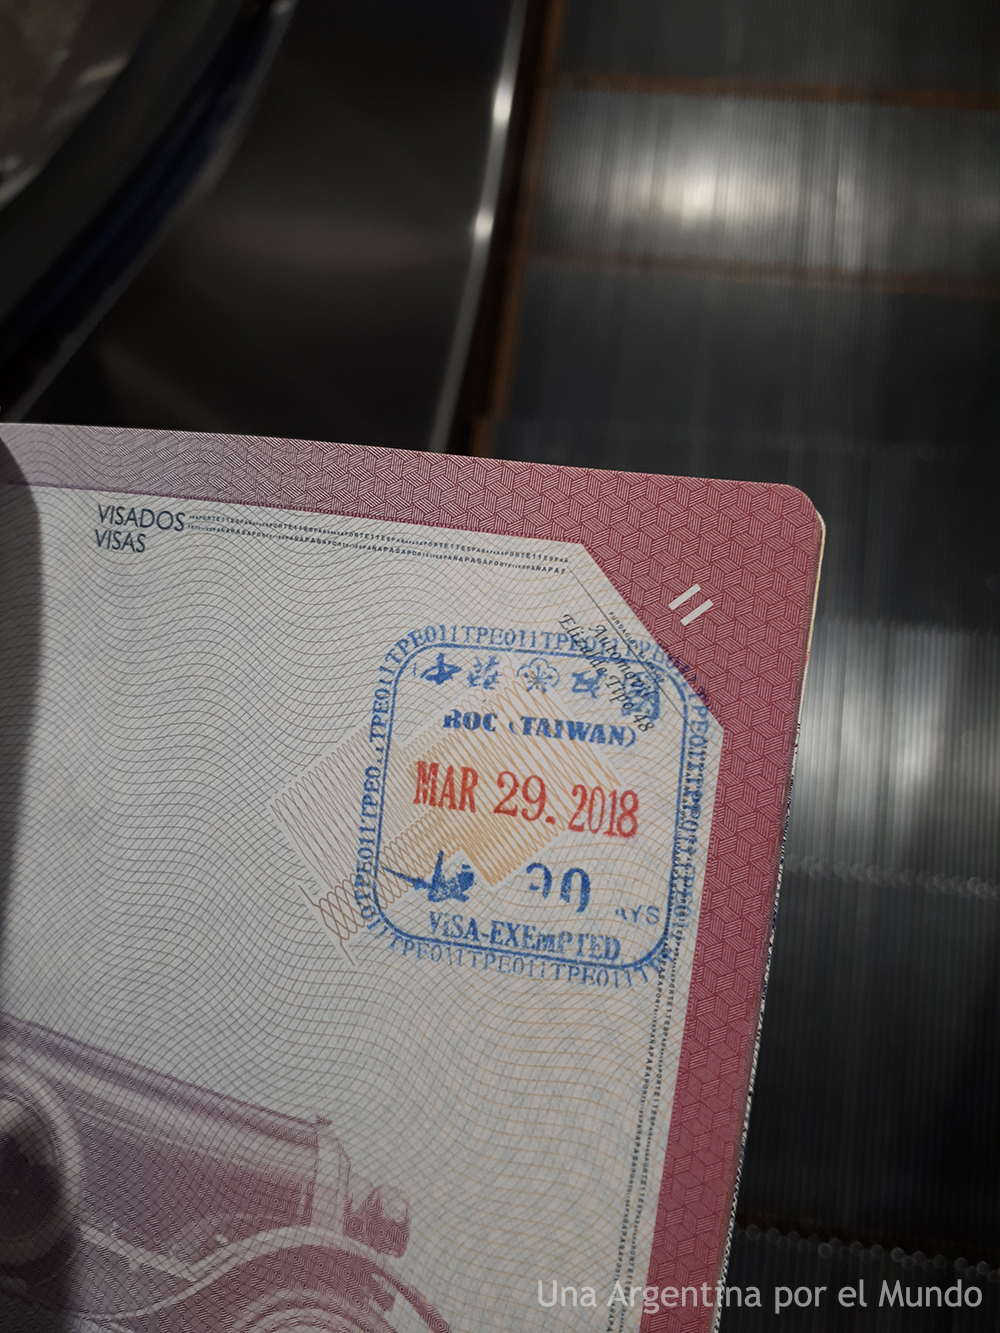 ROC Entry Stamp